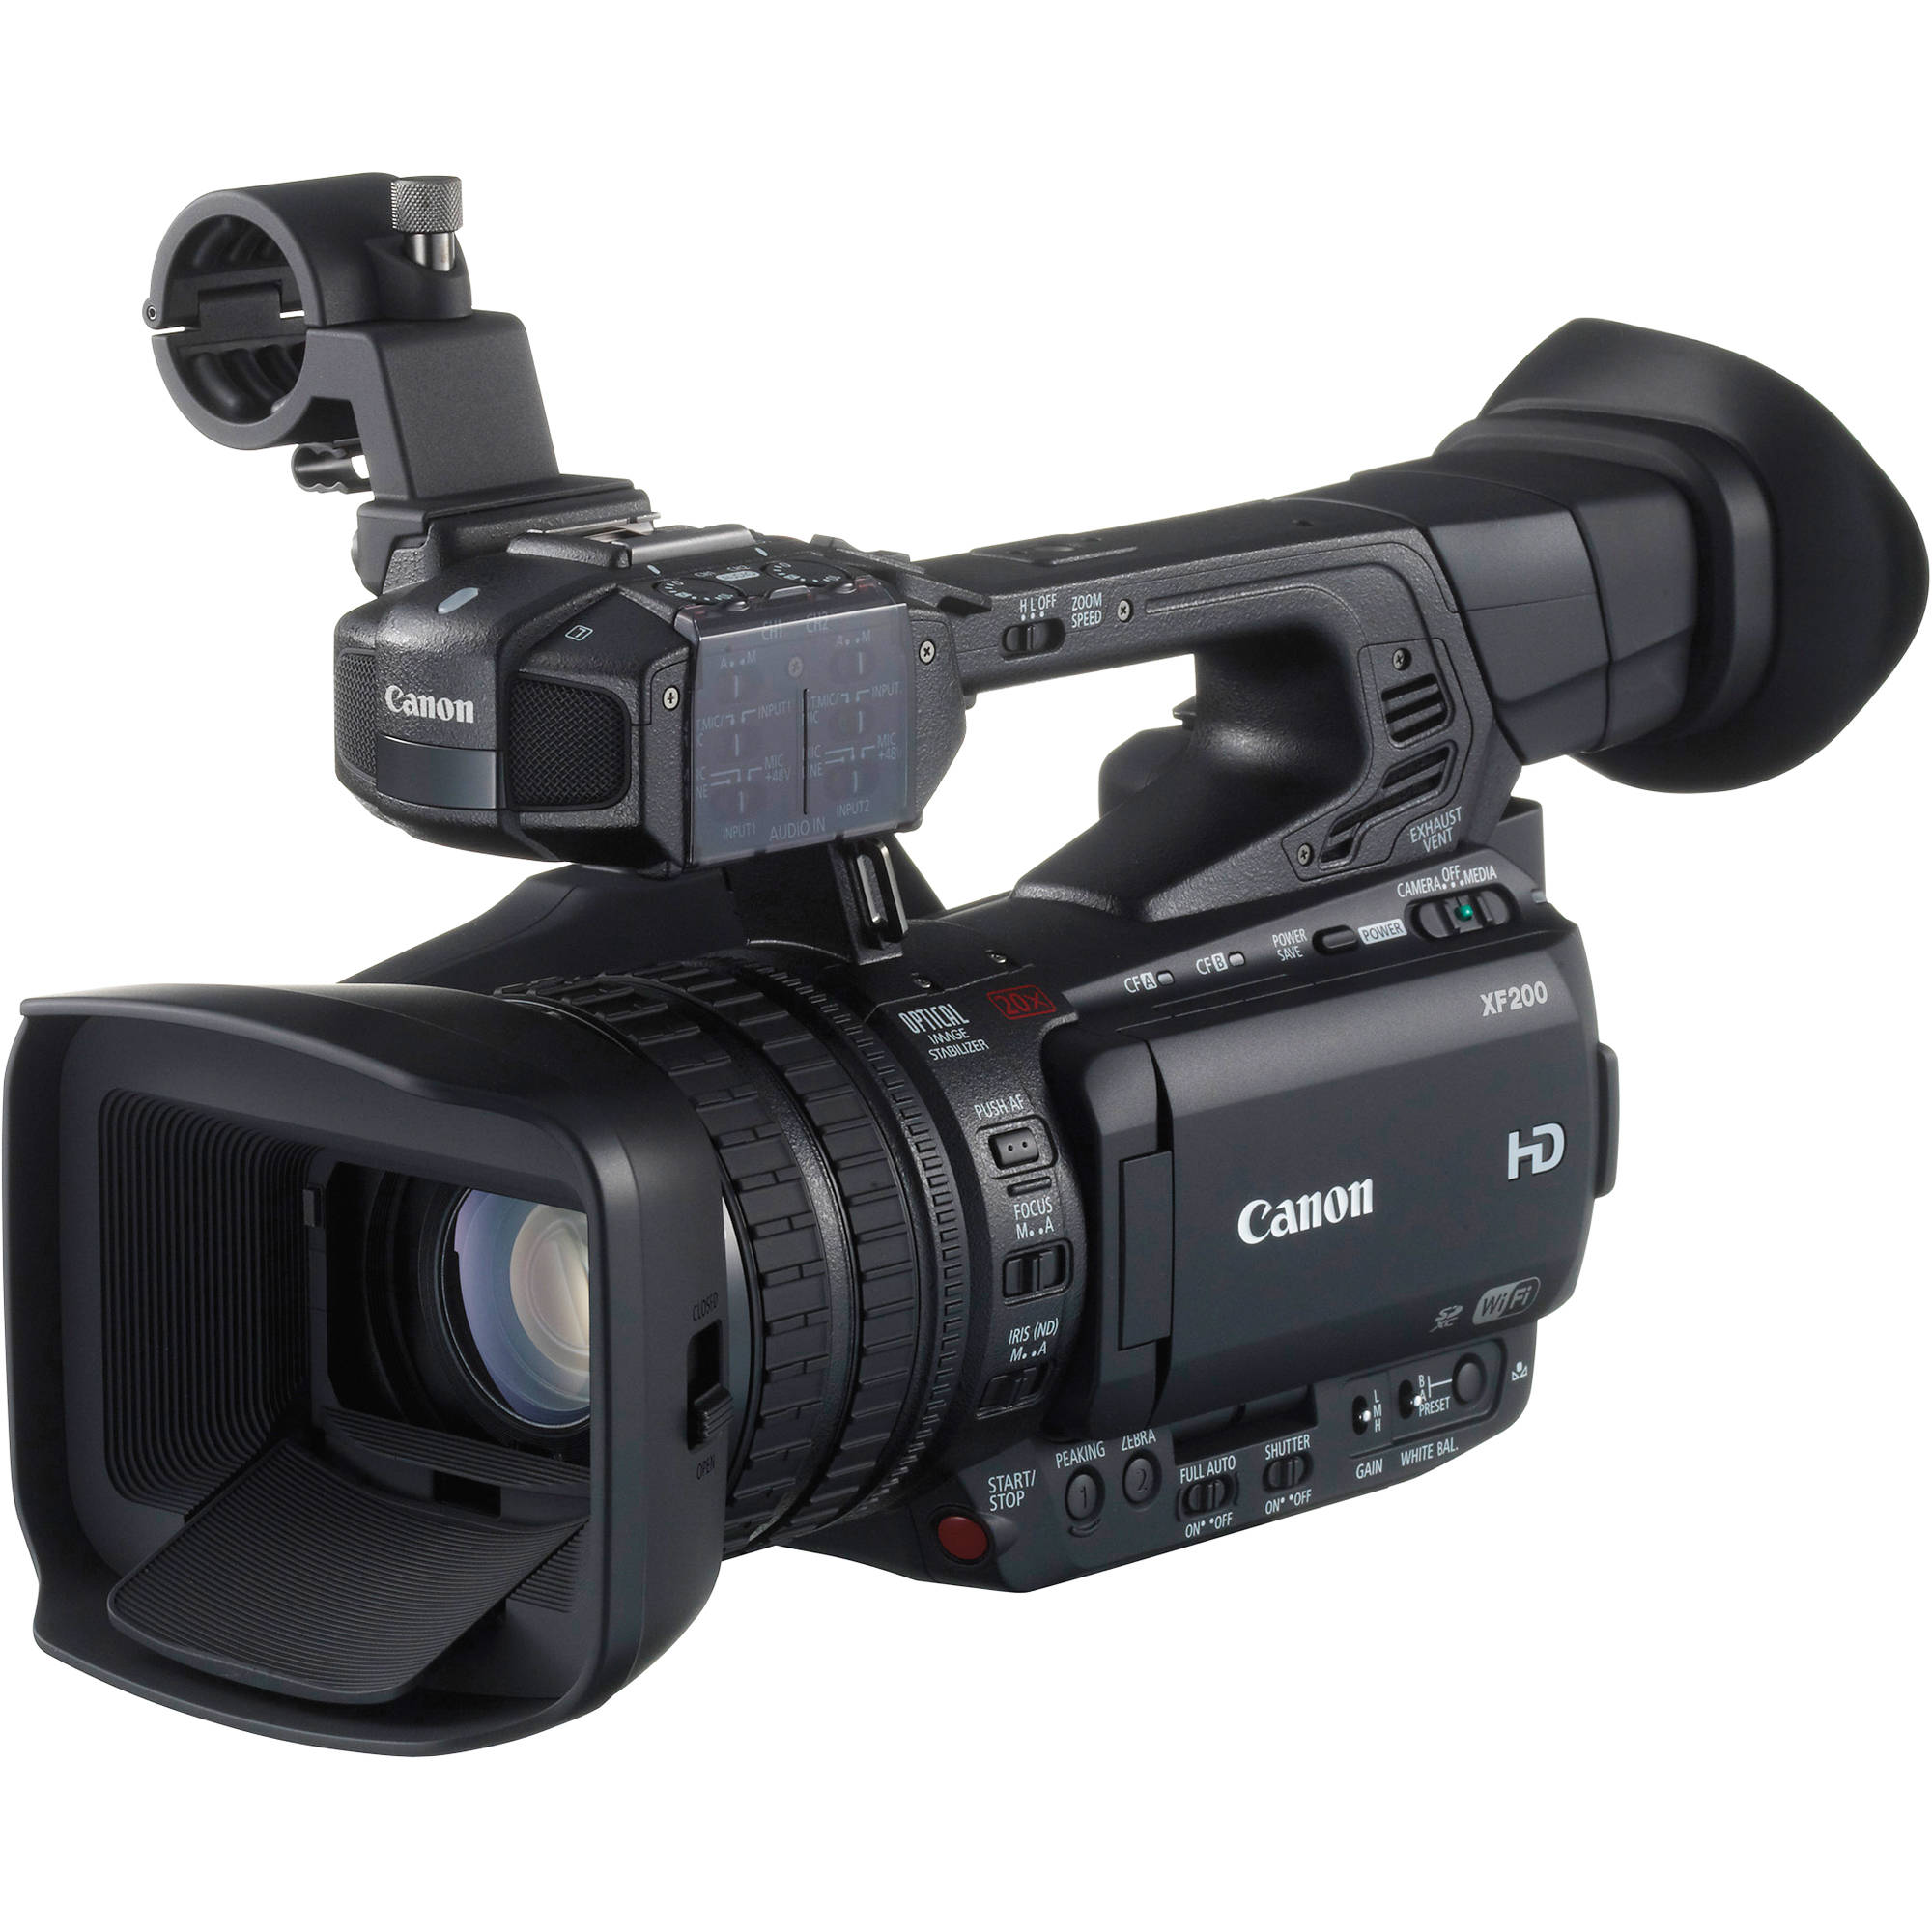 Canon XF200 HD Camcorder 9593B002 B&H Photo Video